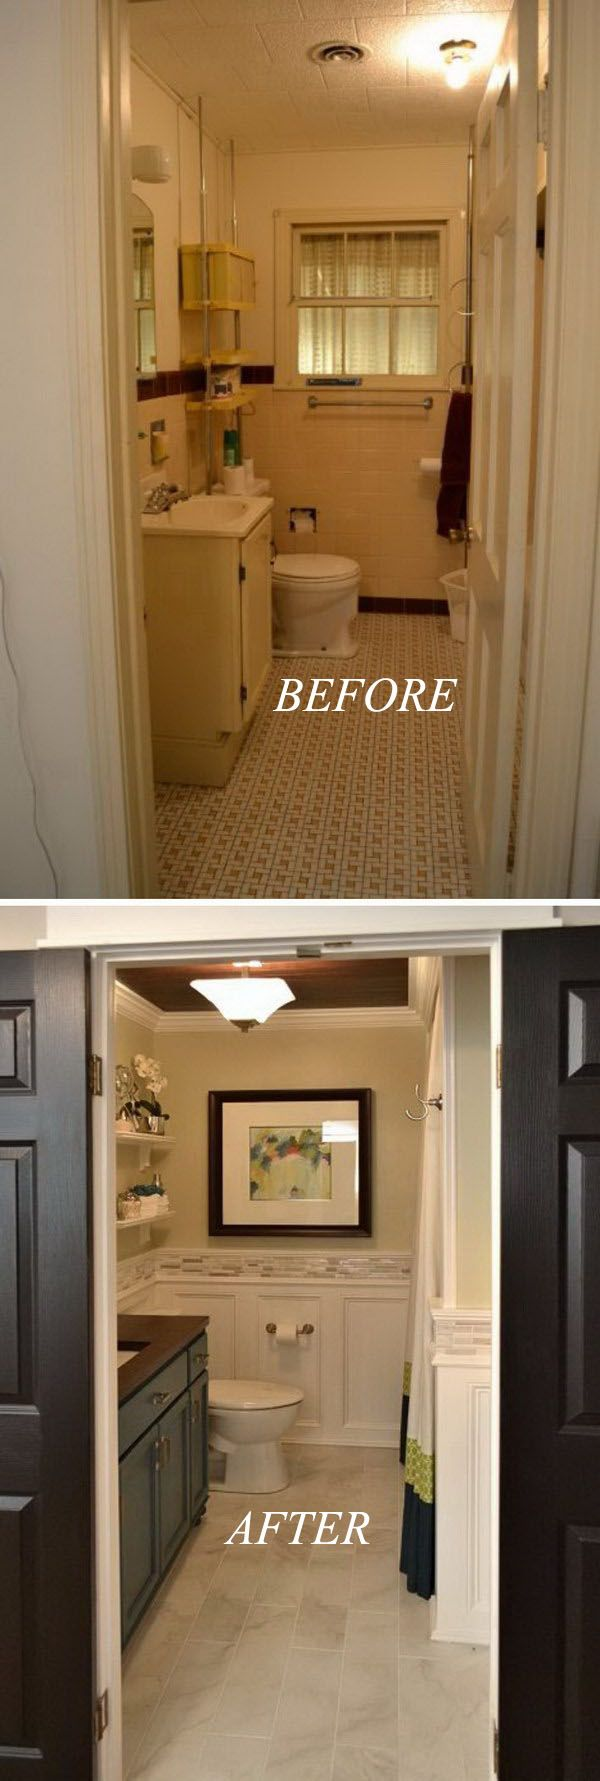 before and after 20 awesome bathroom makeovers - Bathroom Remodel Designs